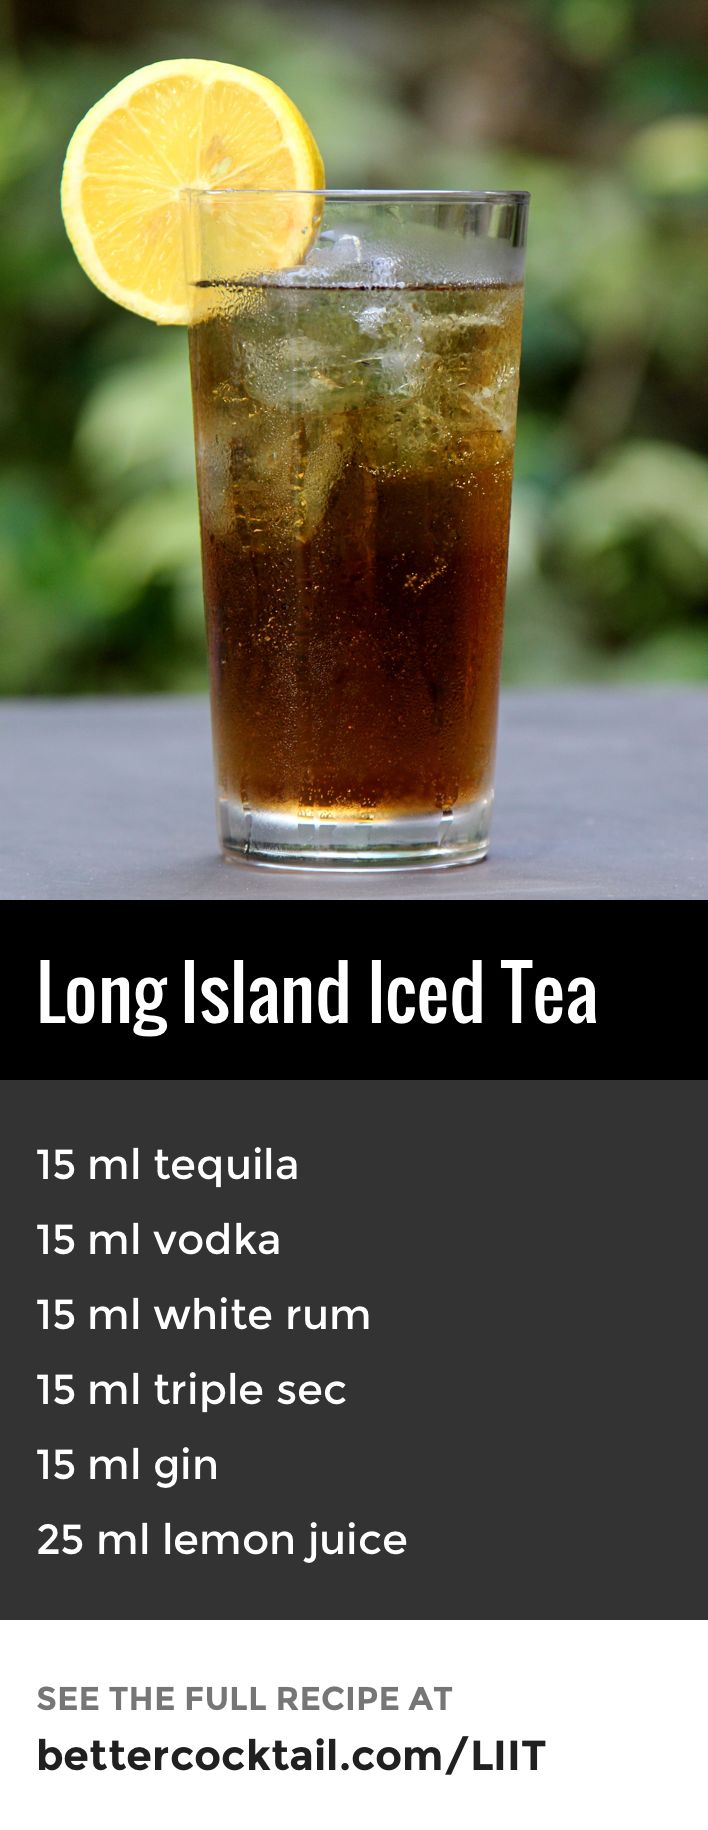 Long Island Iced Tea is a popular summer drink and consists of many different spirits and is strong compared to similarly sized highball drinks as the alcohol to mixer ratio is higher. It gets its similar in both colour and taste to iced tea.